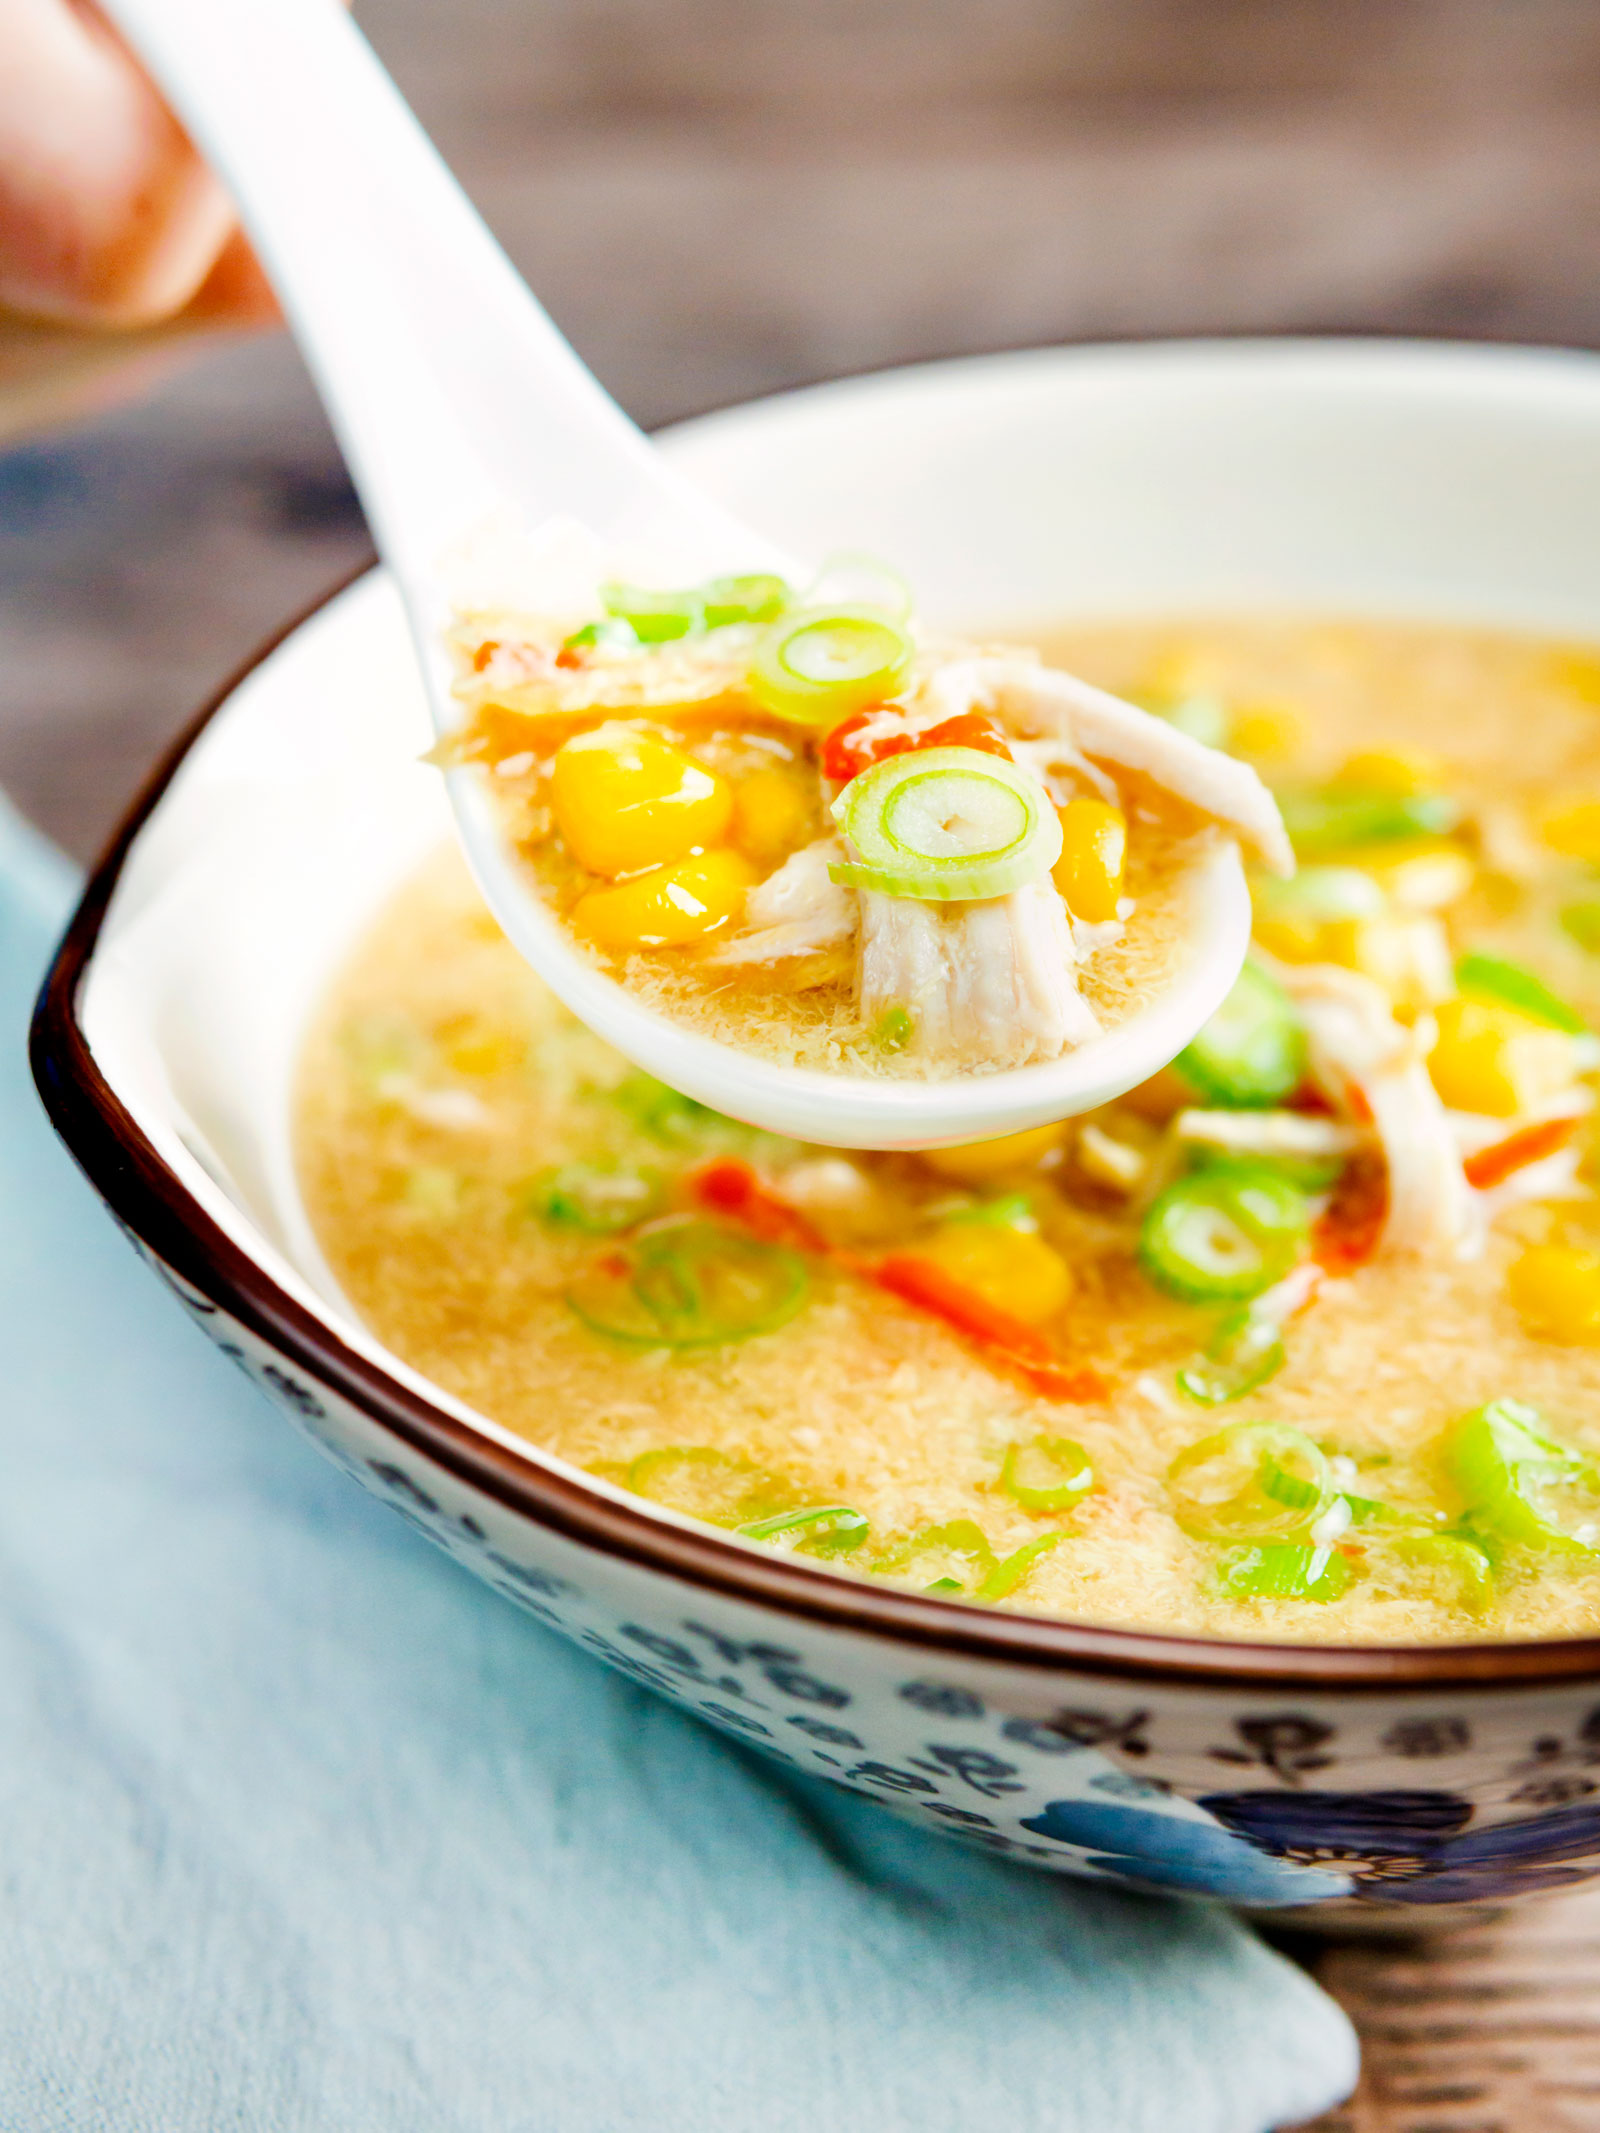 Chinese style chicken and sweetcorn soup on a spoon.